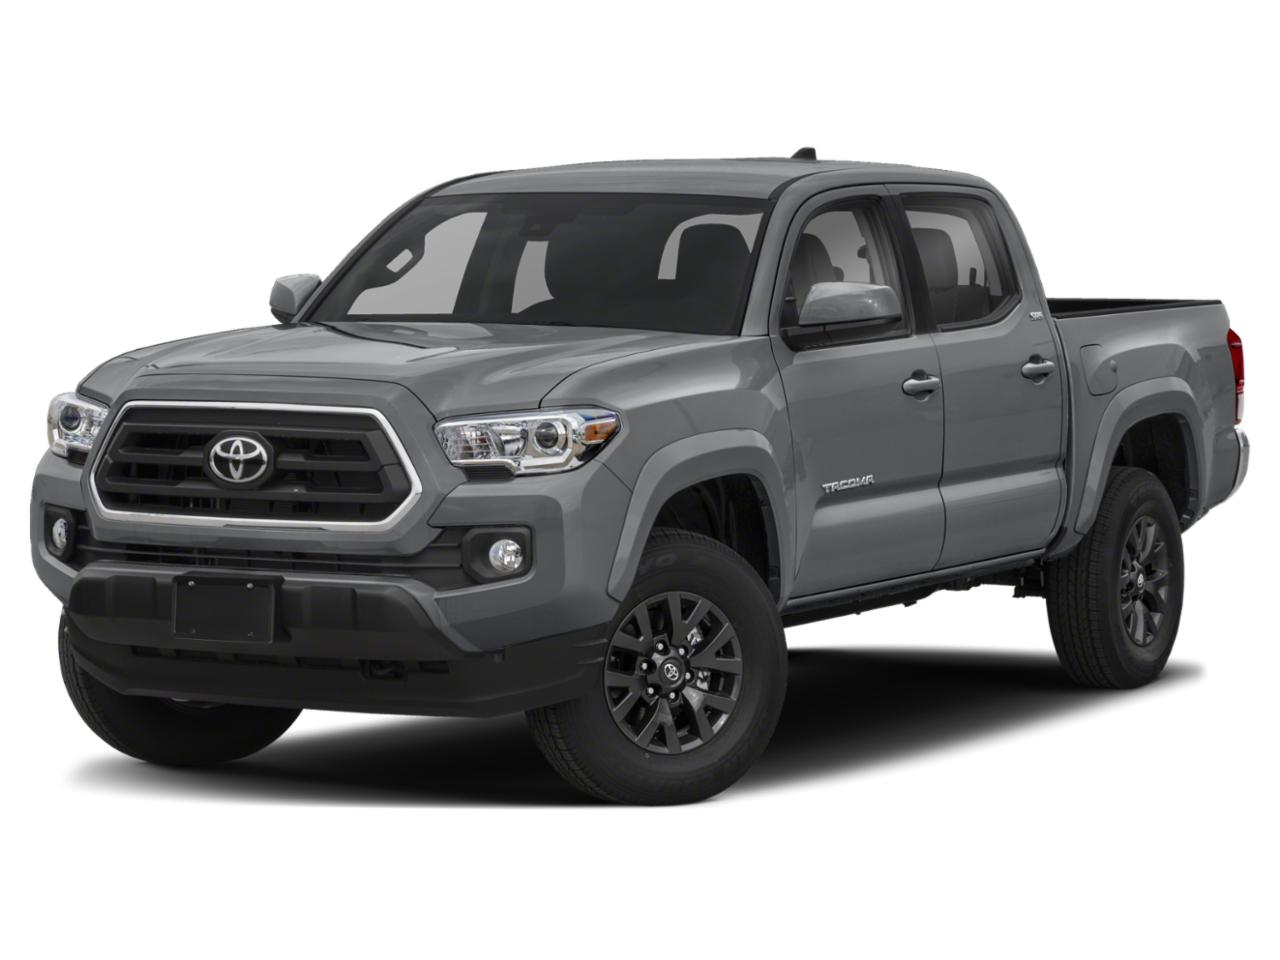 2020 Toyota Tacoma 4WD Vehicle Photo in Portland, OR 97225